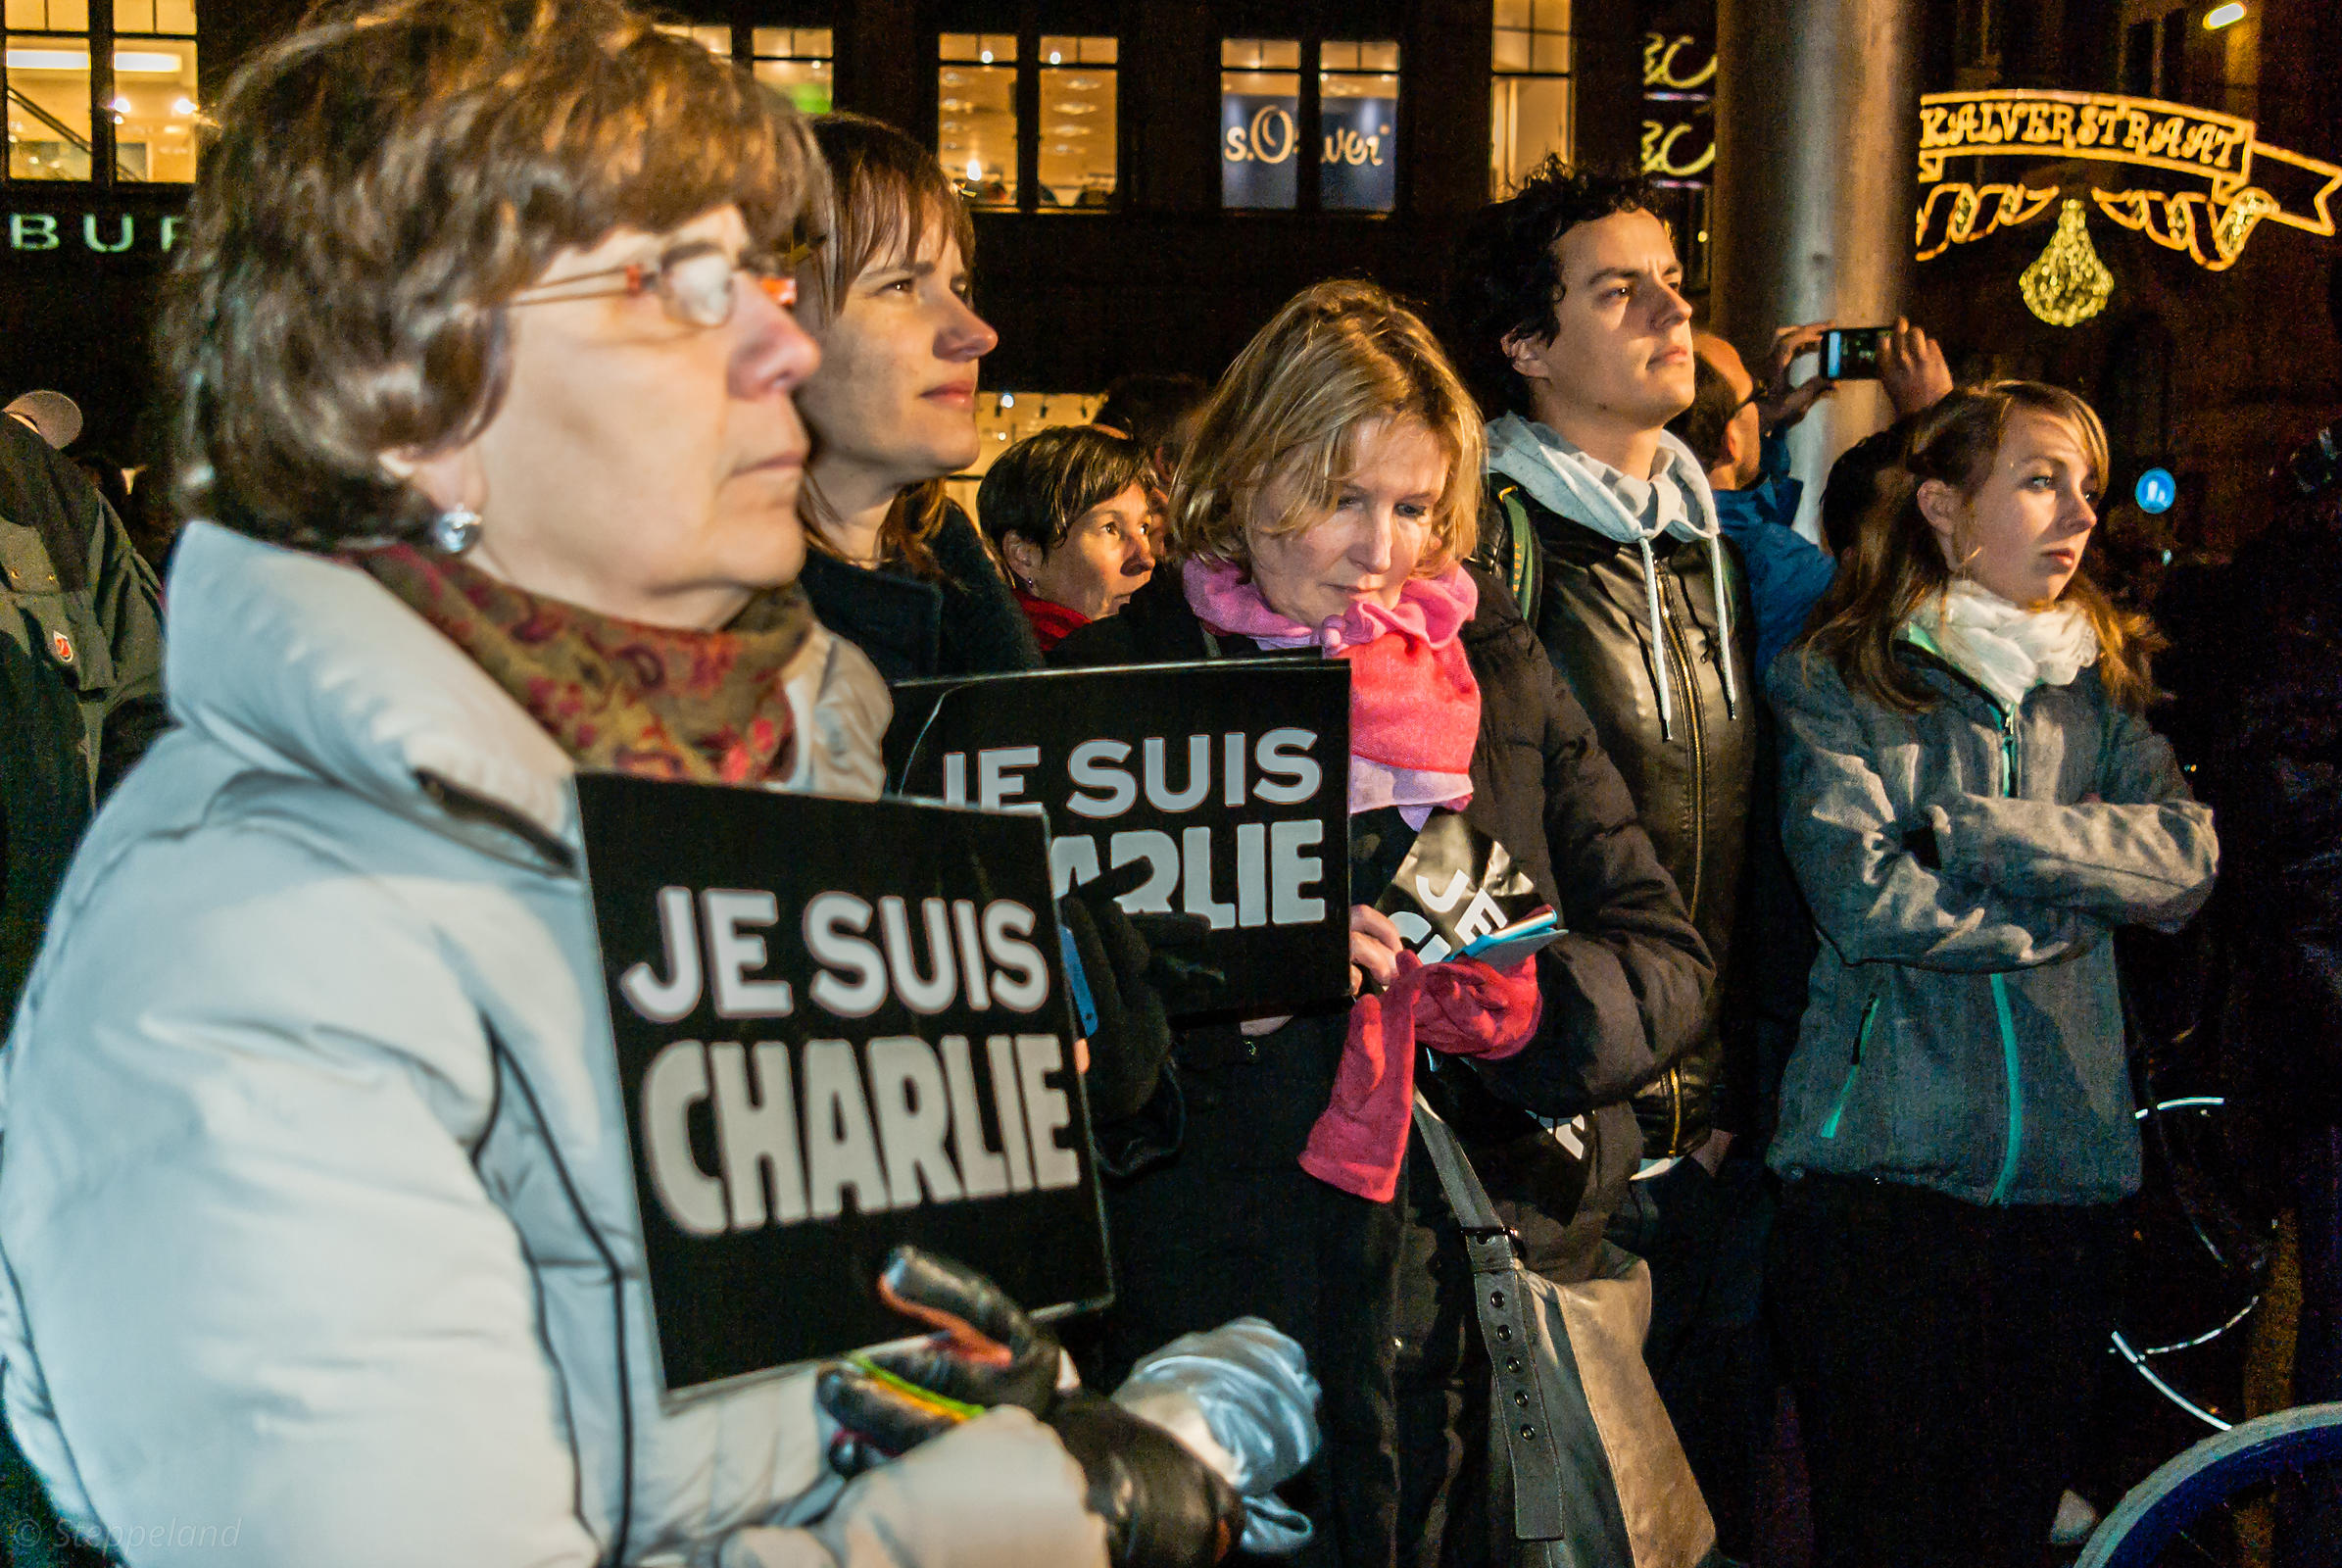 Amsterdam, Netherlands 2015-01-08: People holding signs: 'Je suis Charlie' while they listen to the speeches.